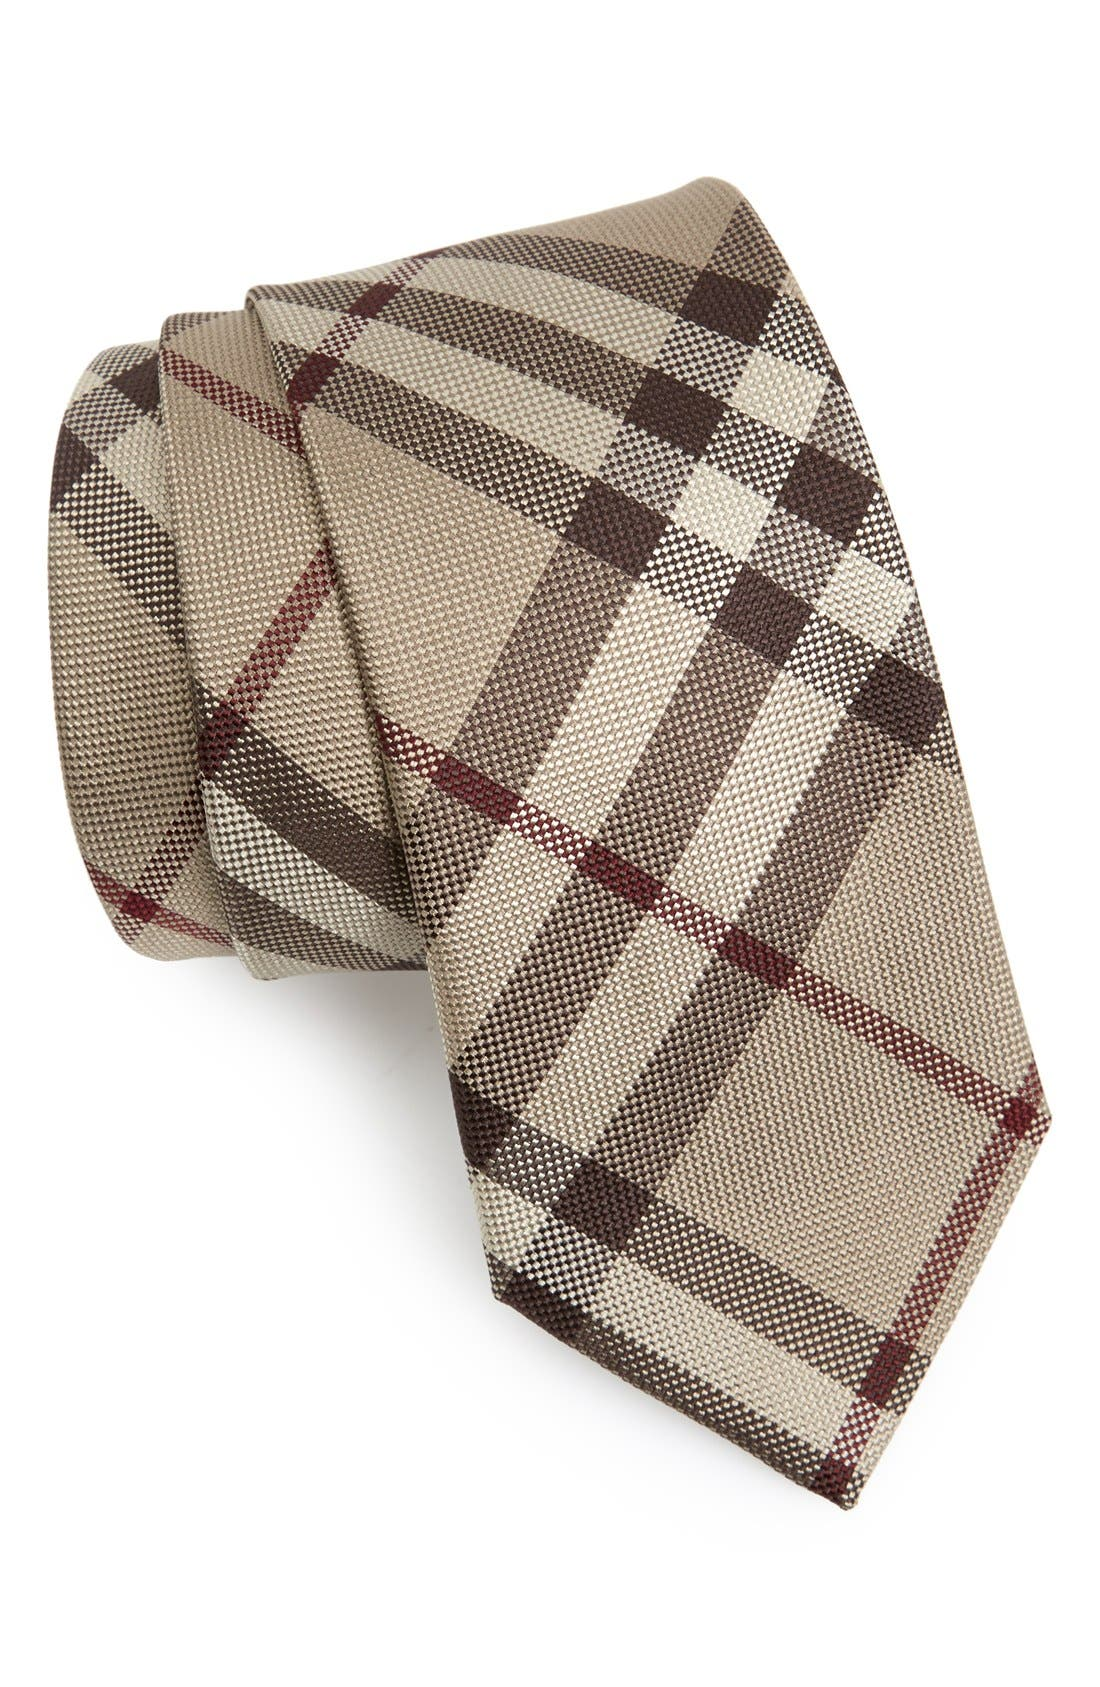 BURBERRY LONDON Burberry Silk Tie